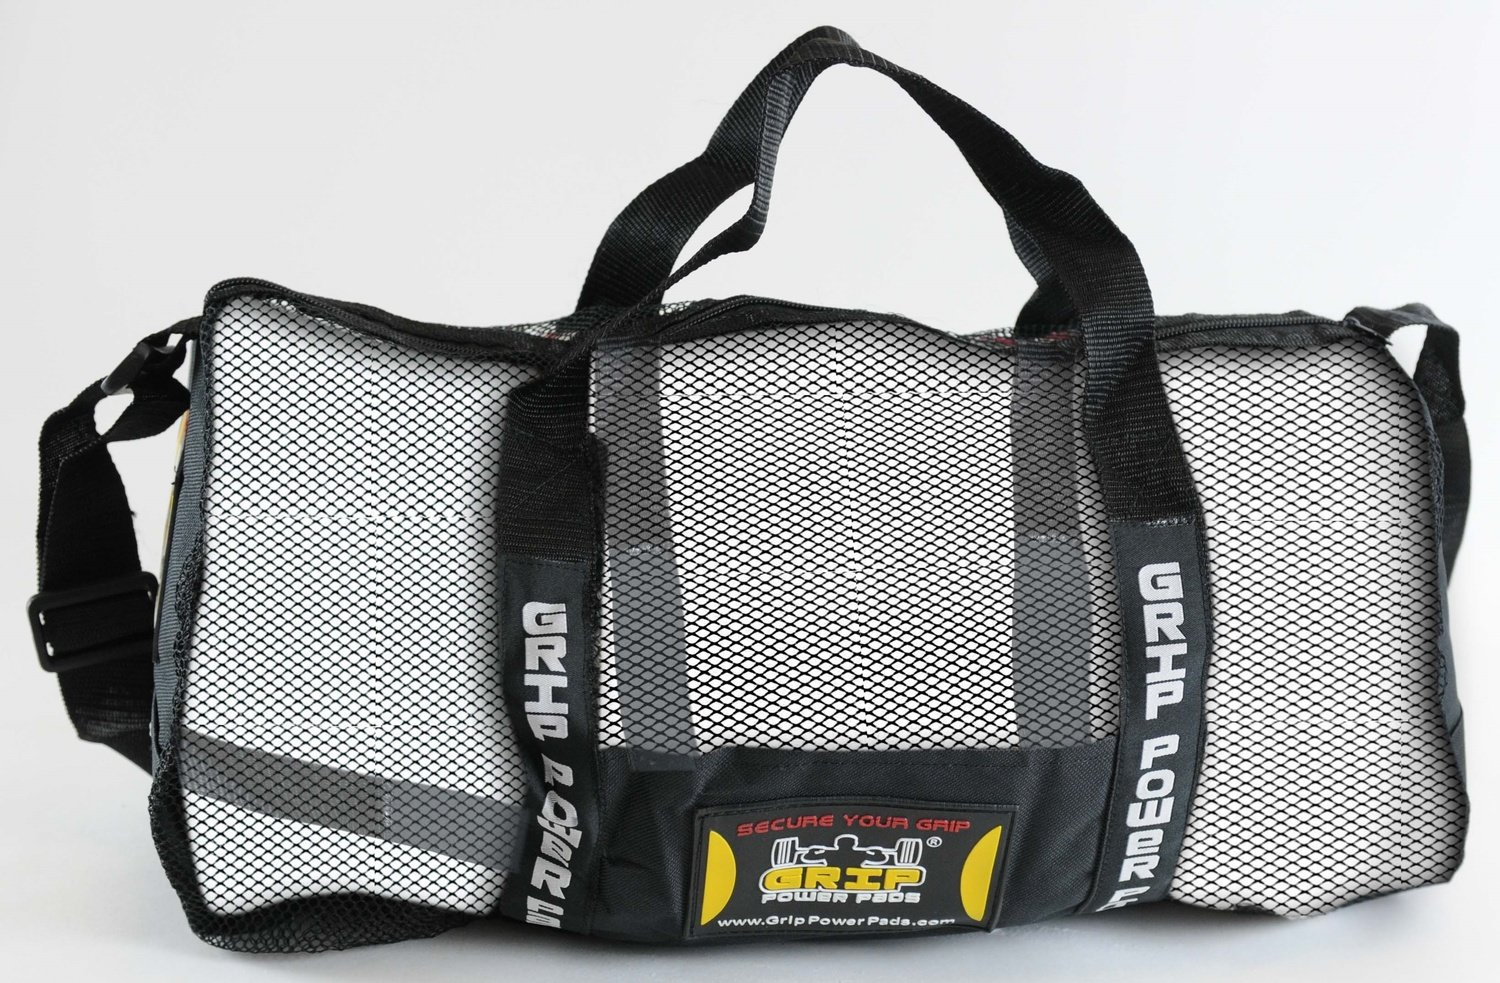 Mesh Gear Bag - Multipurpose Gym Bag, Beach Bag Scuba Diving Bag & More